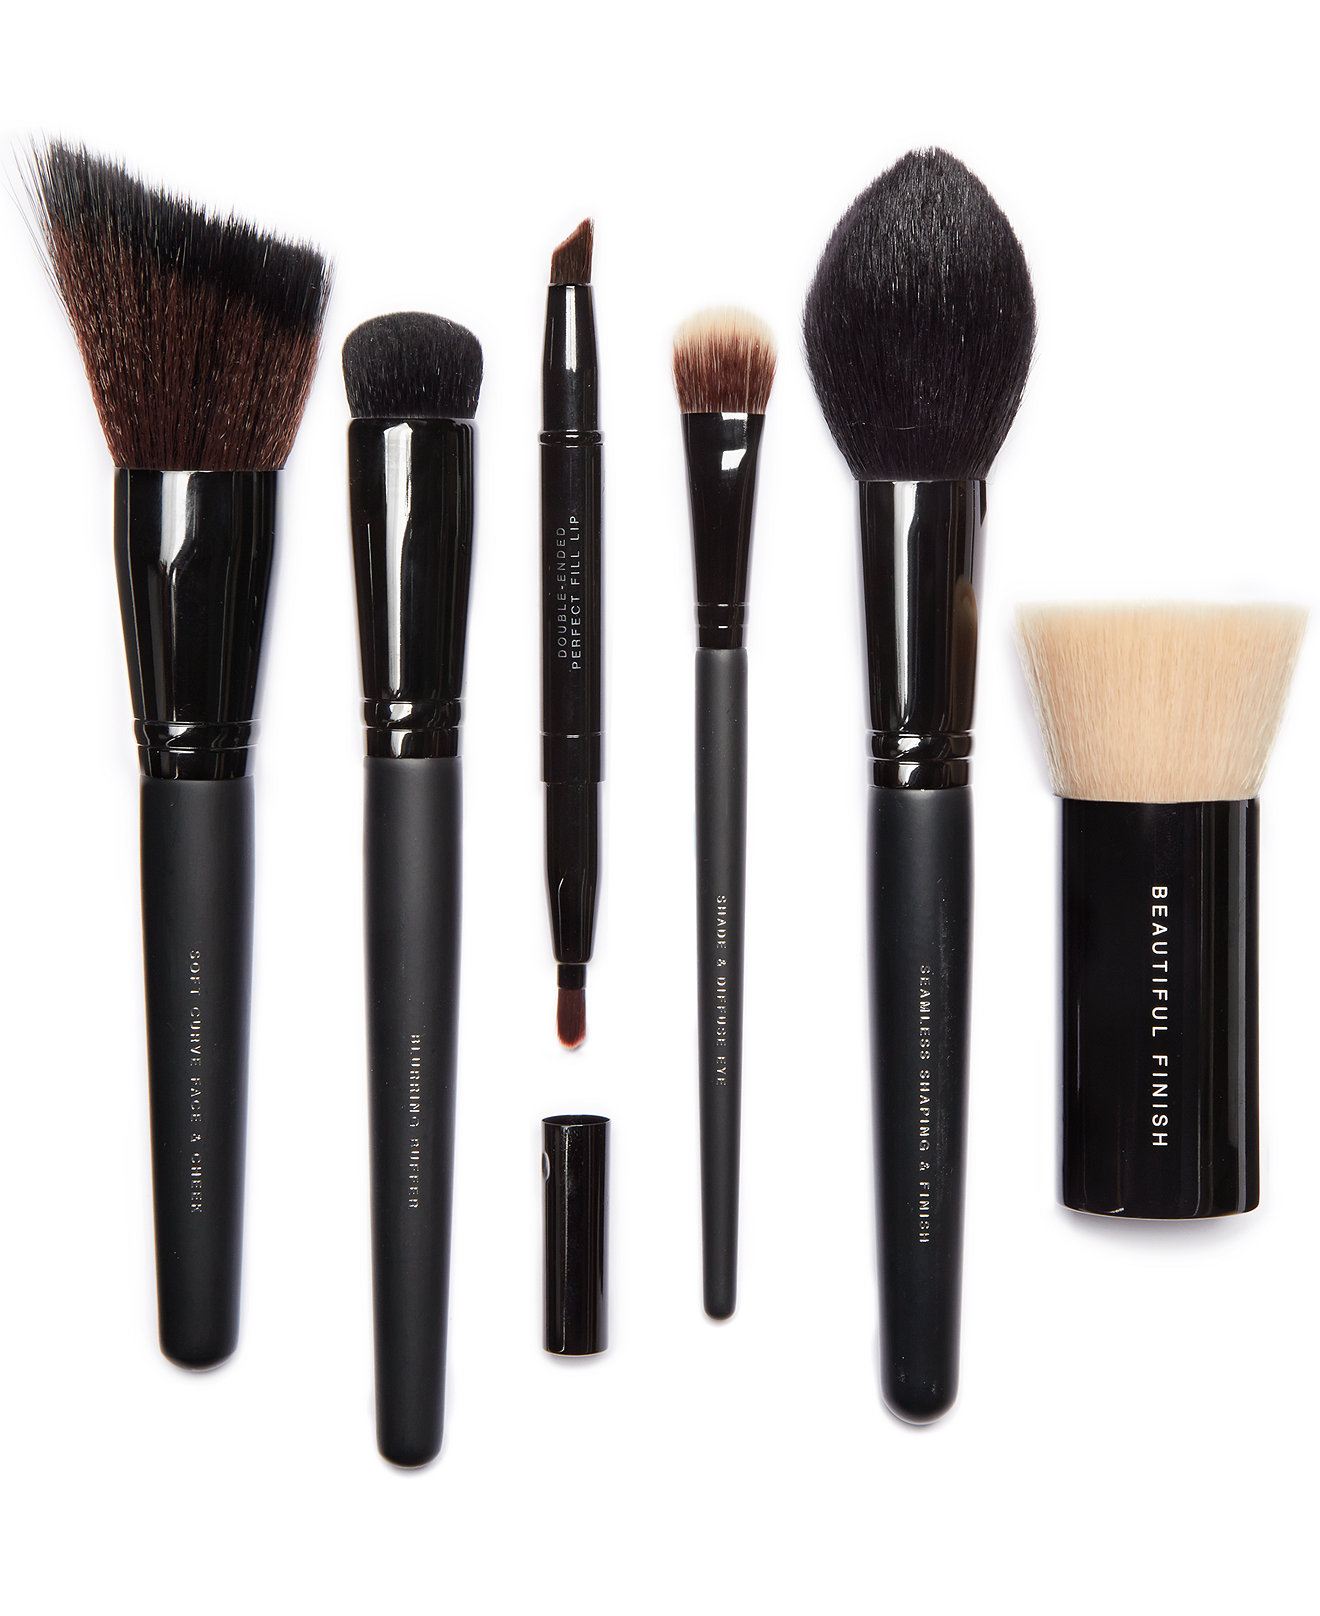 Bare Minerals Makeup Brushes Clean